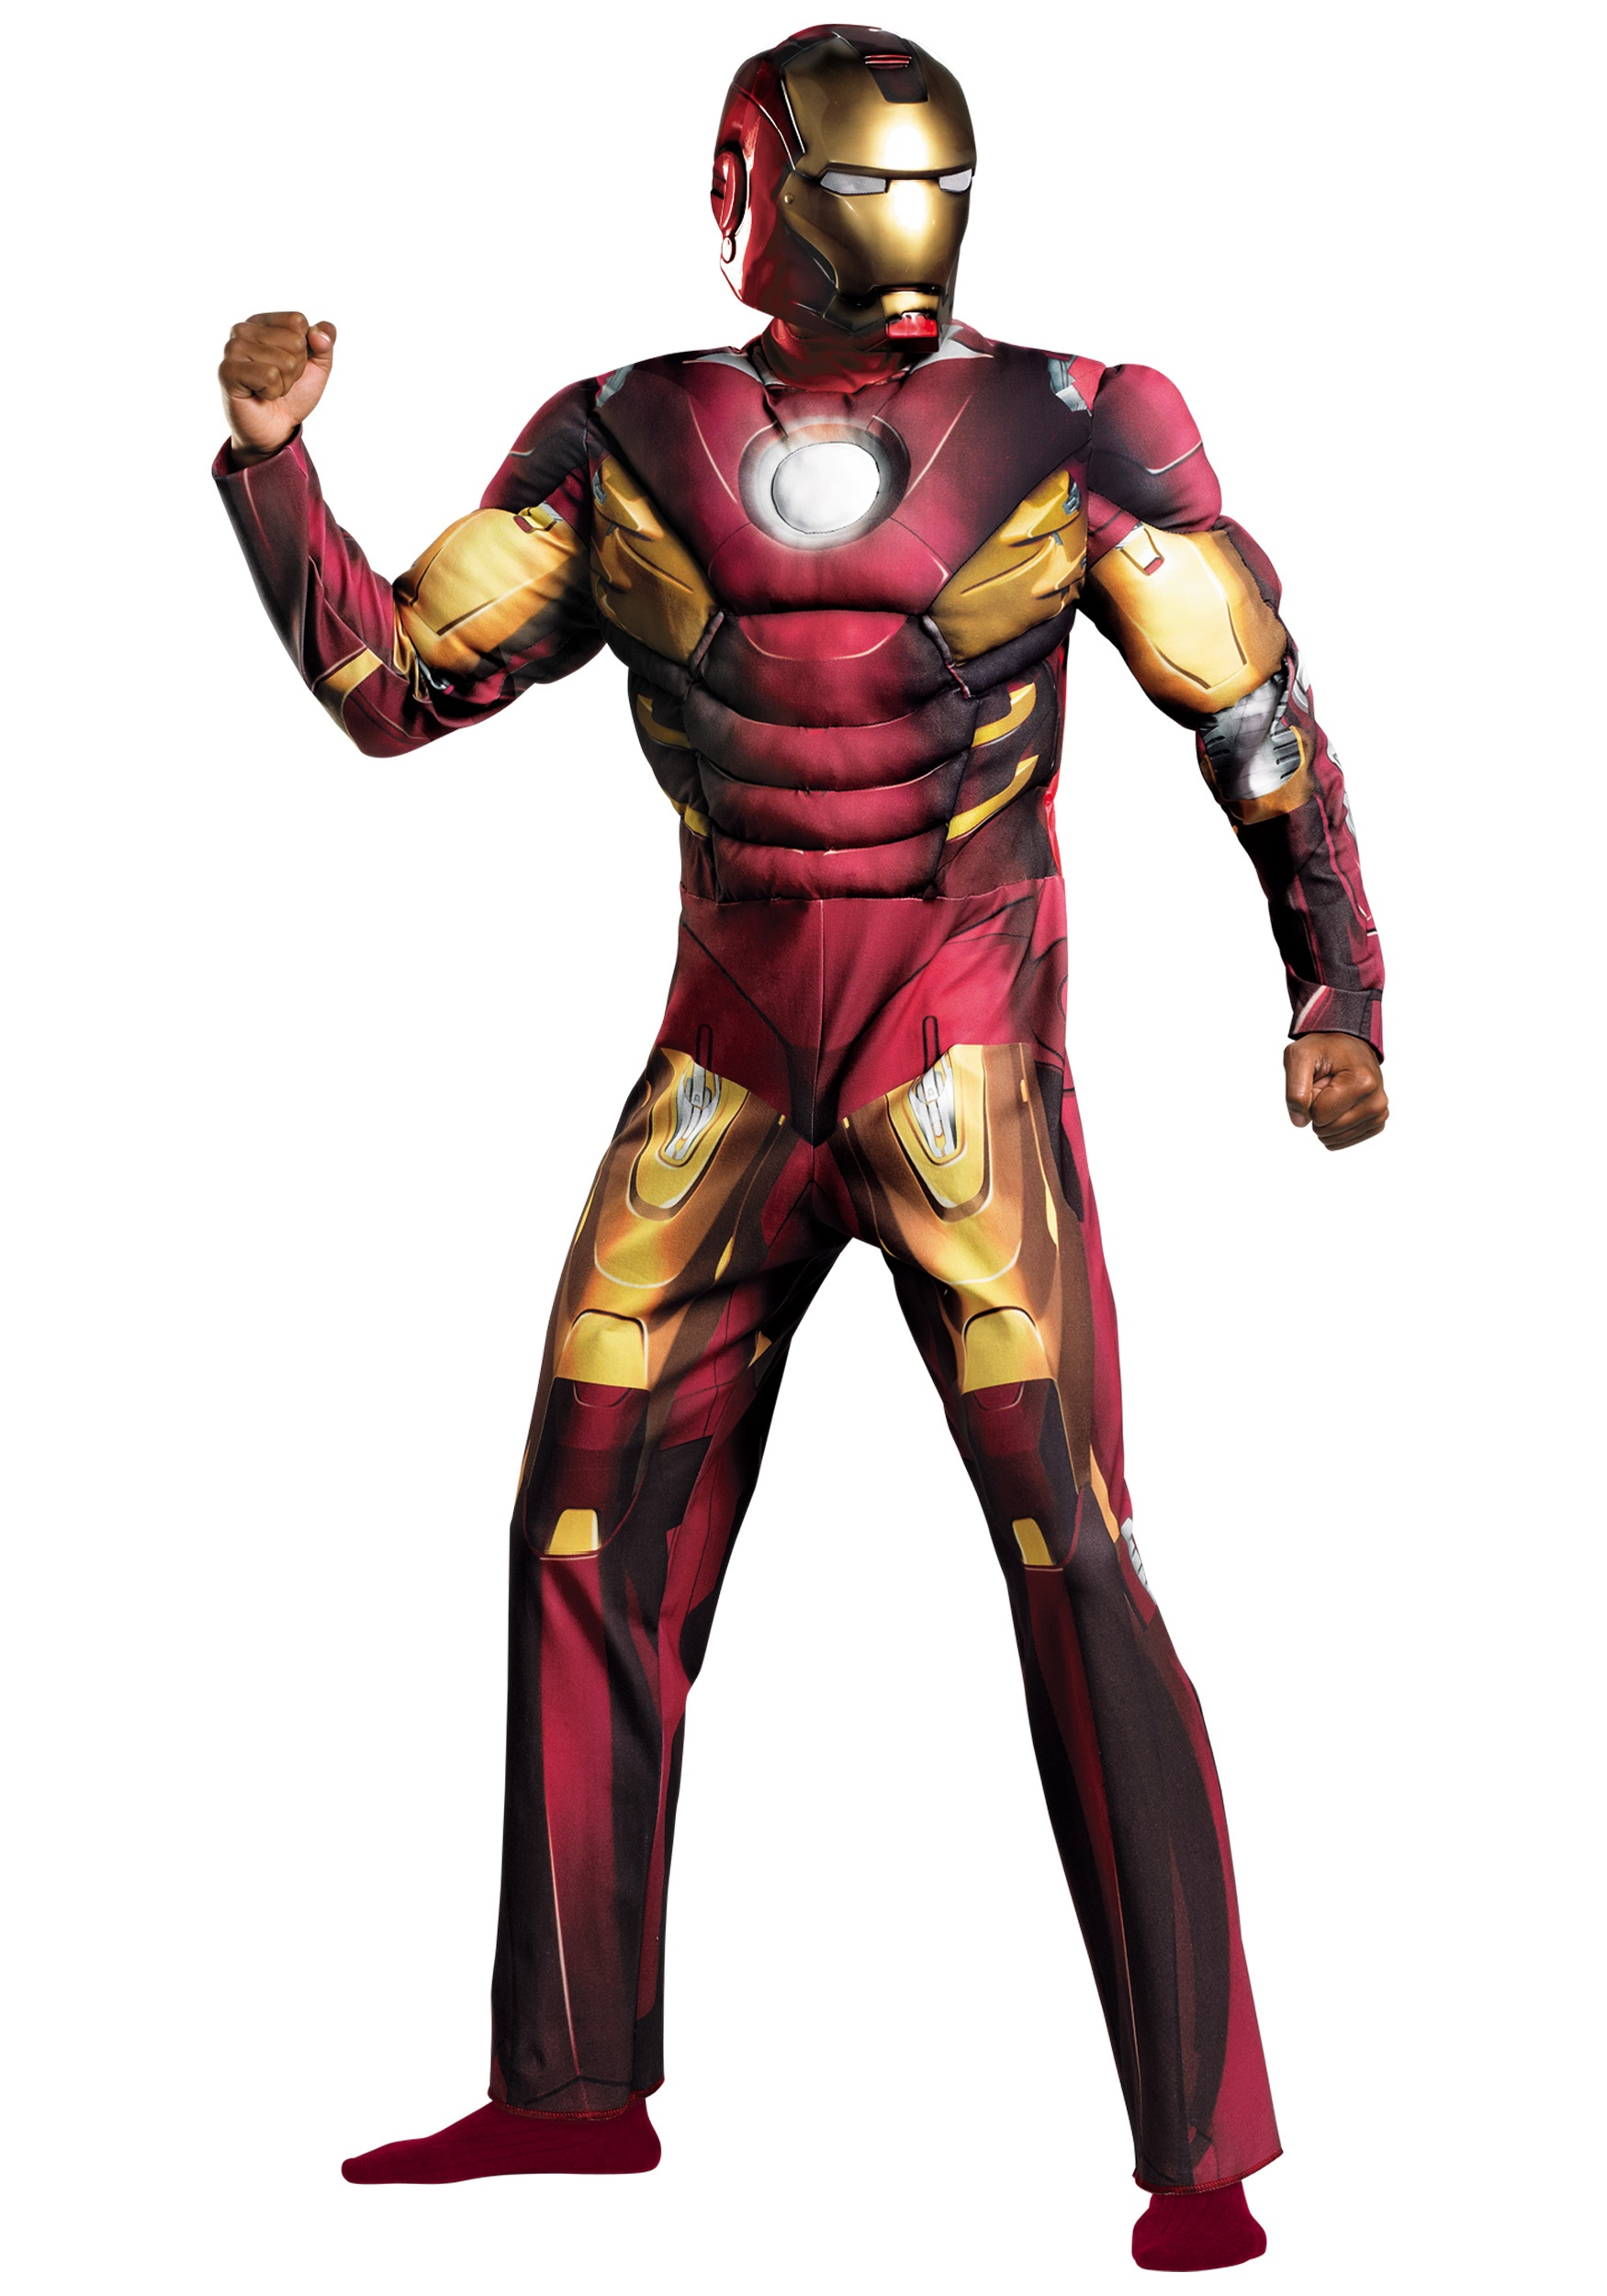 Avengers Adult Iron Man Costume